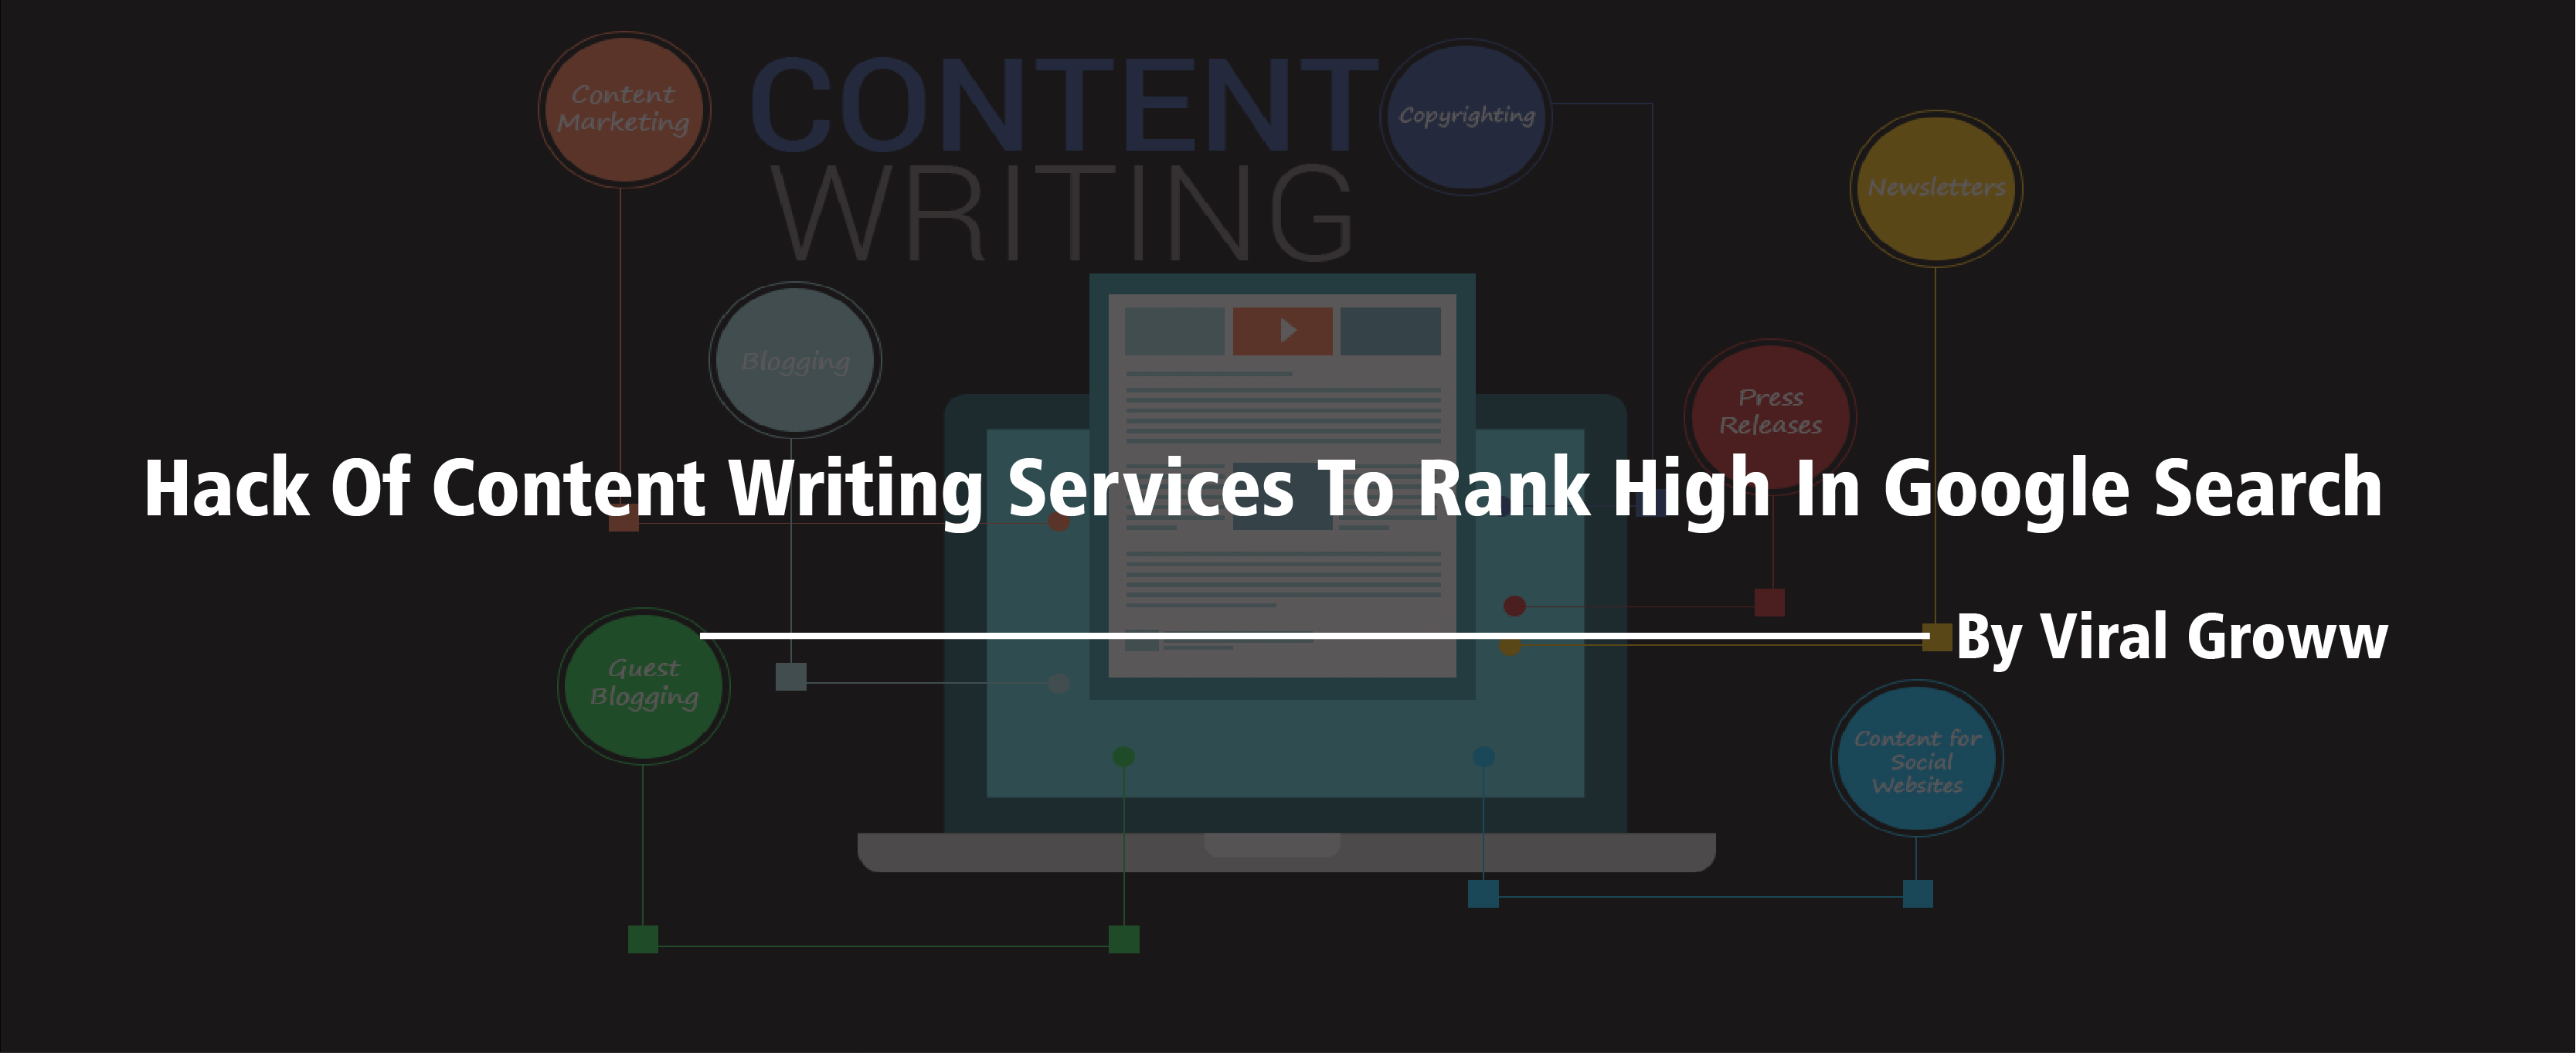 Hack Of Content Writing Services To Rank High In Google Search